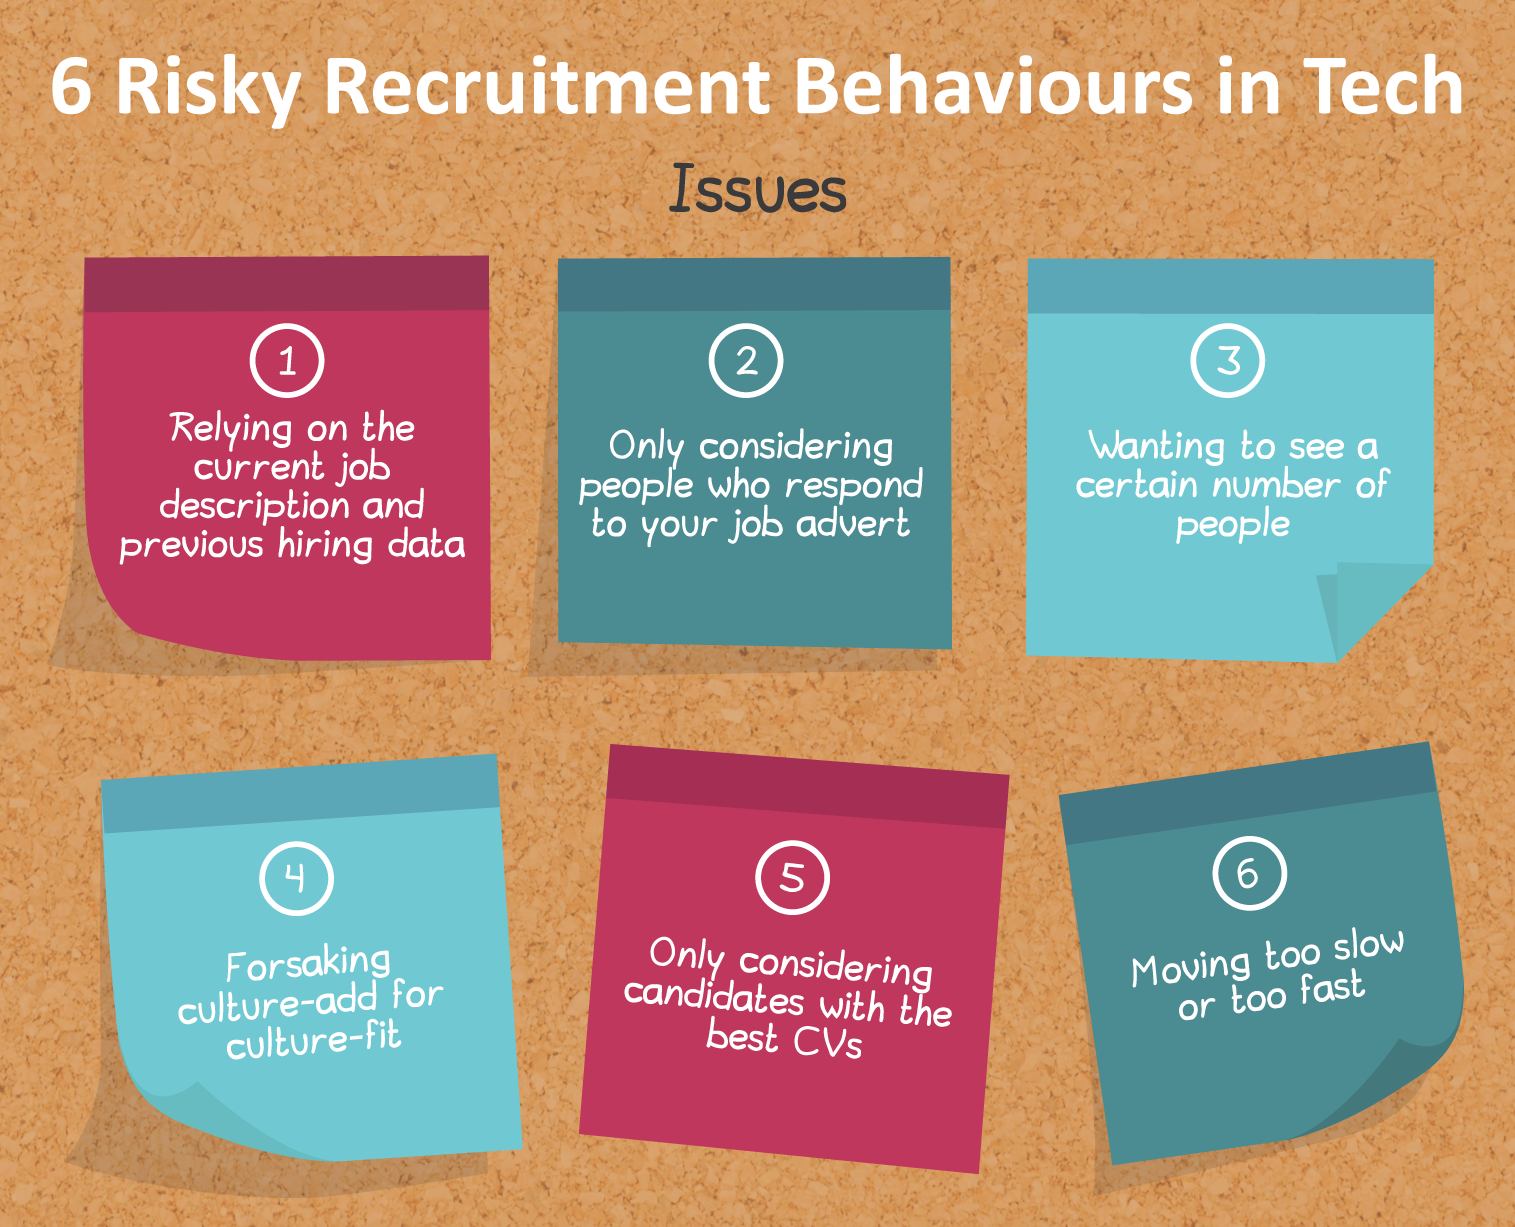 6 Ways to Mitigate Recruitment Risks for Tech Companies